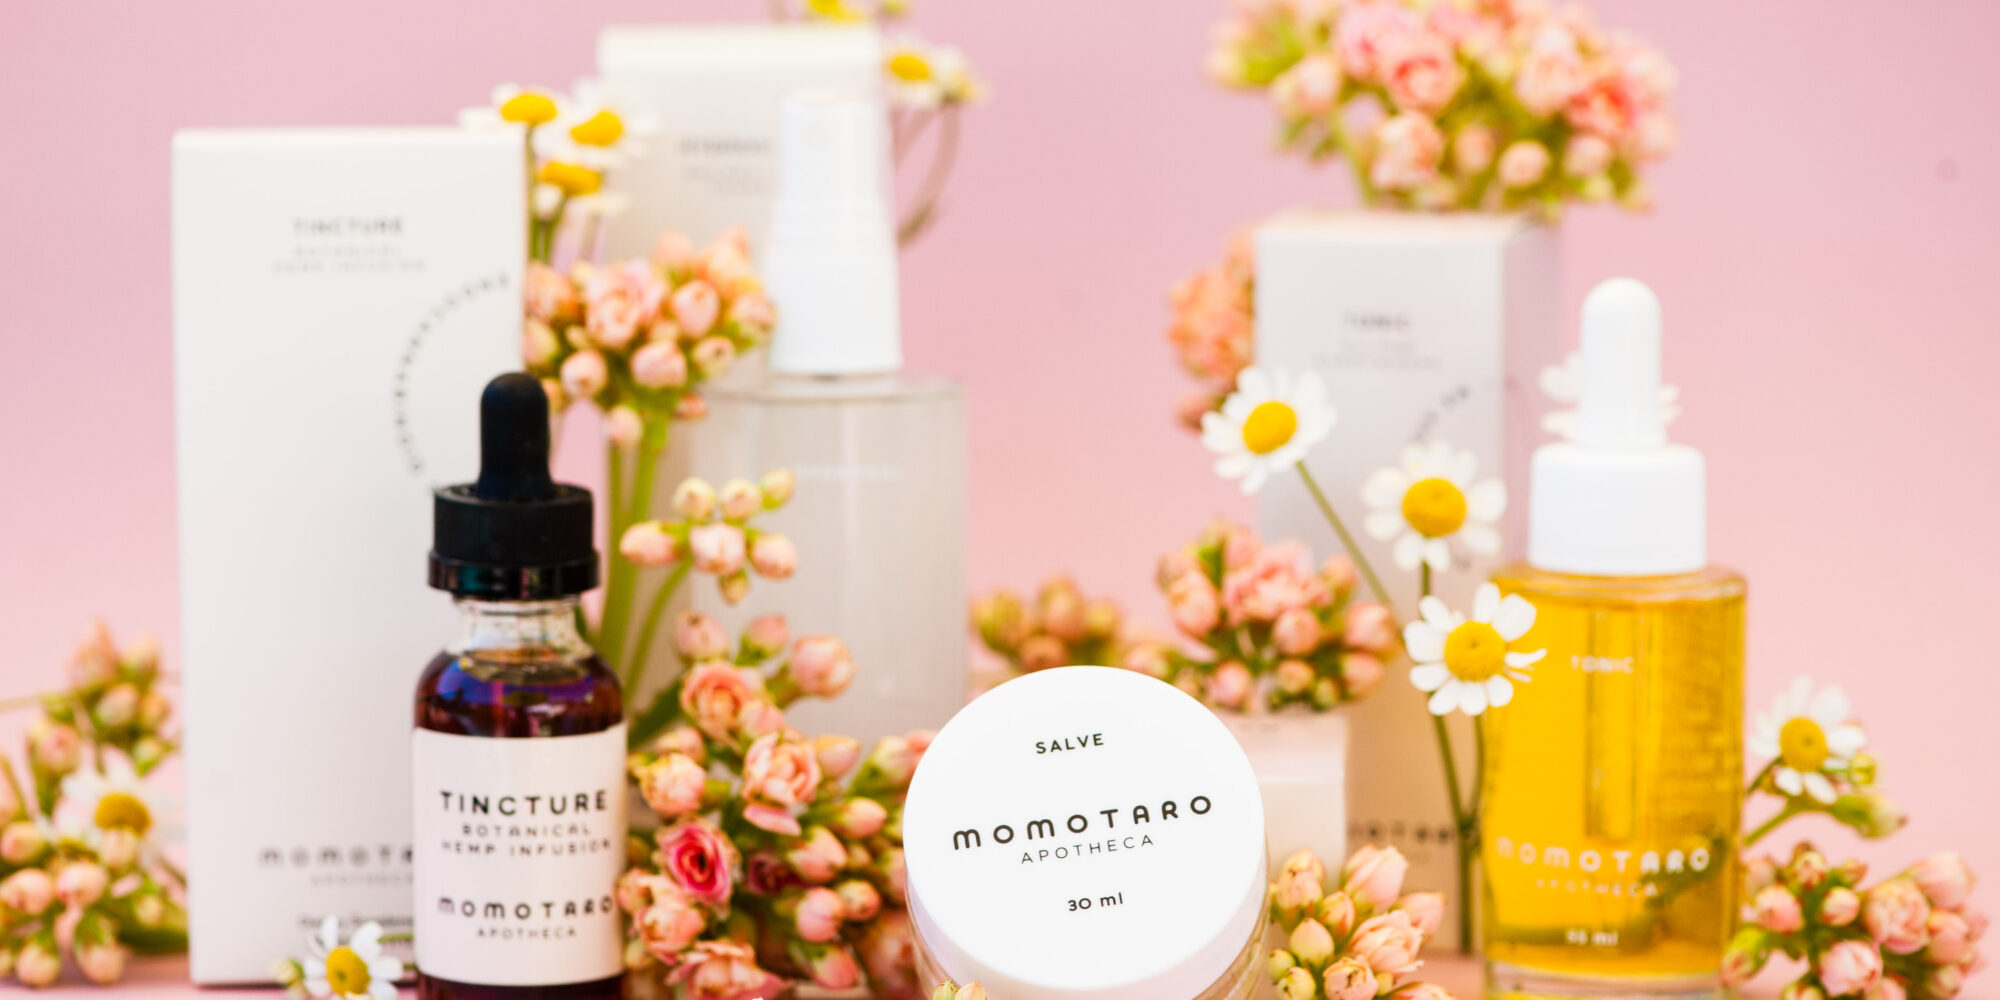 Meet The Growing Brand Out To Be A Cross Between Glossier And Patagonia For The Vaginal Wellness Category